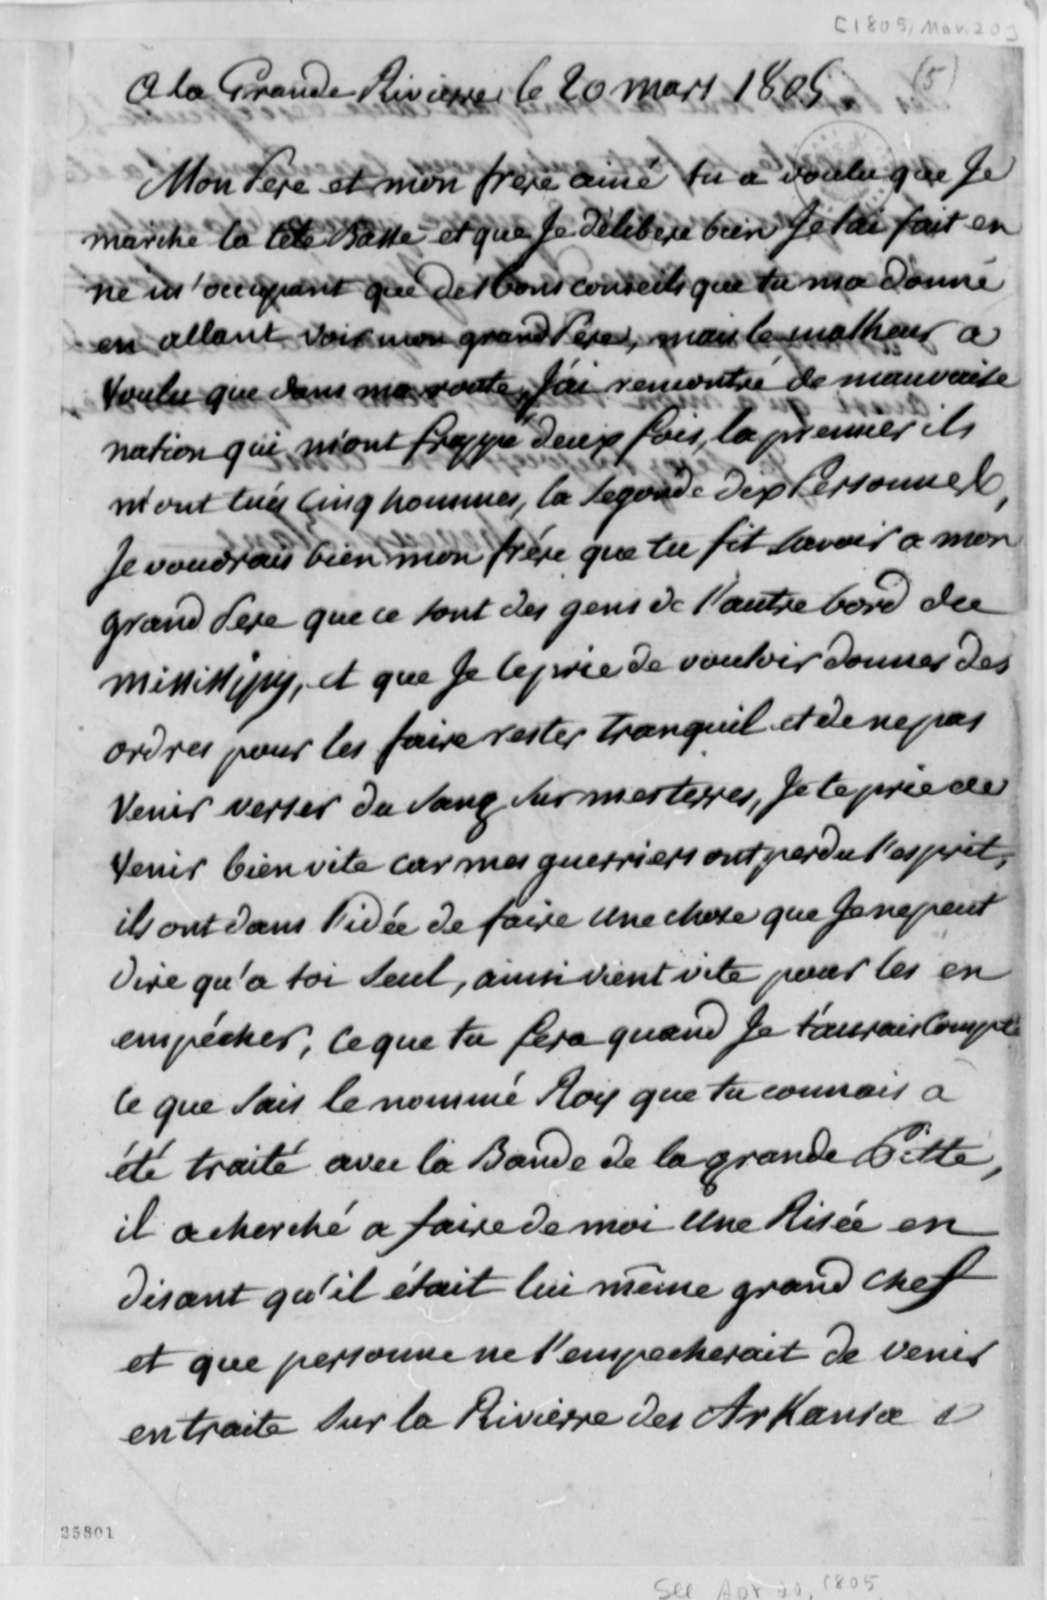 Cheveux Blanc to Pierre Chouteau, March 20, 1805